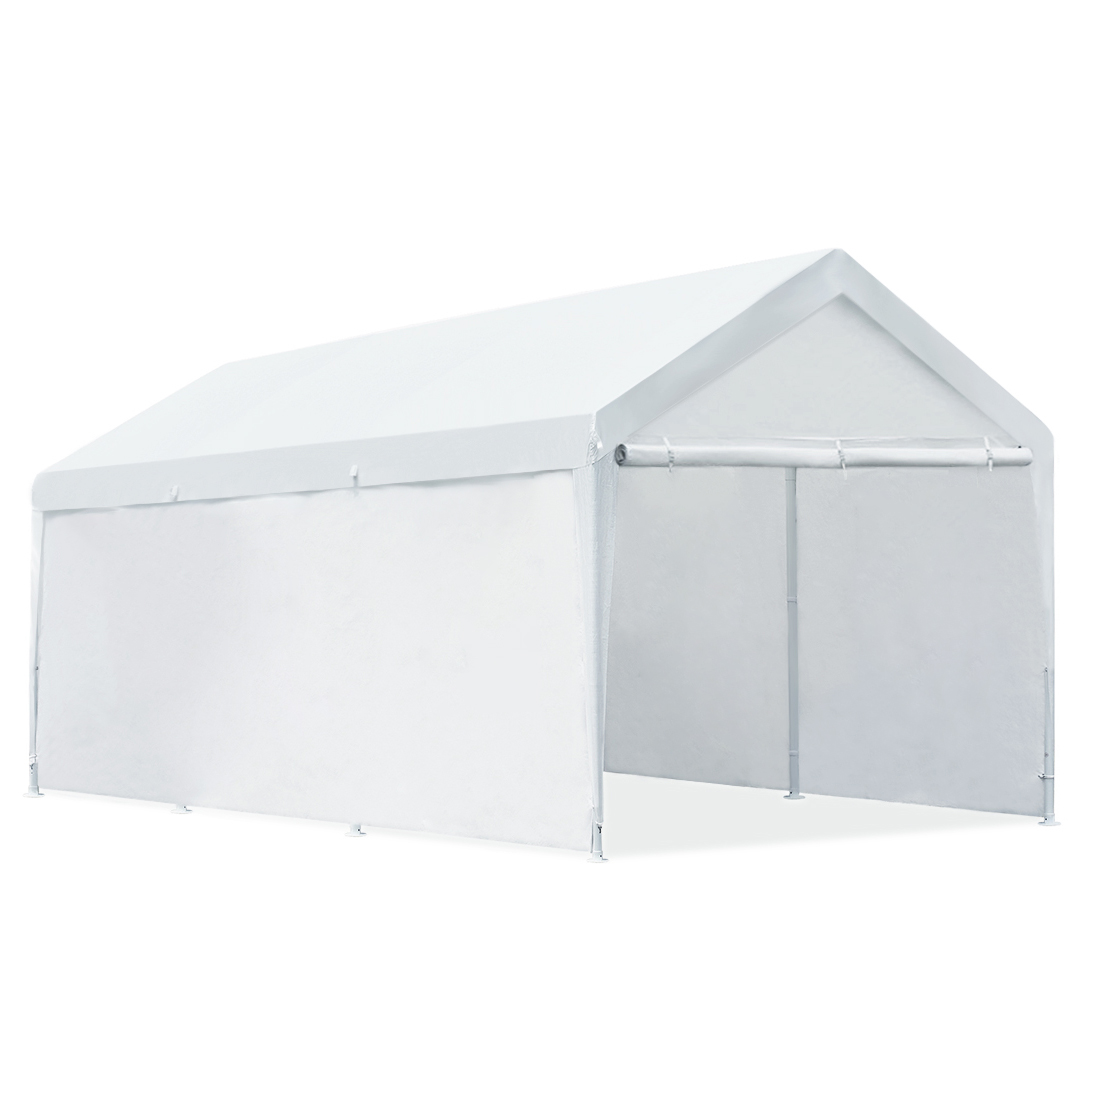 Click here to buy Quictent 20x10 Heavy Duty Portable Carport Canopy Party Tent White (1101).